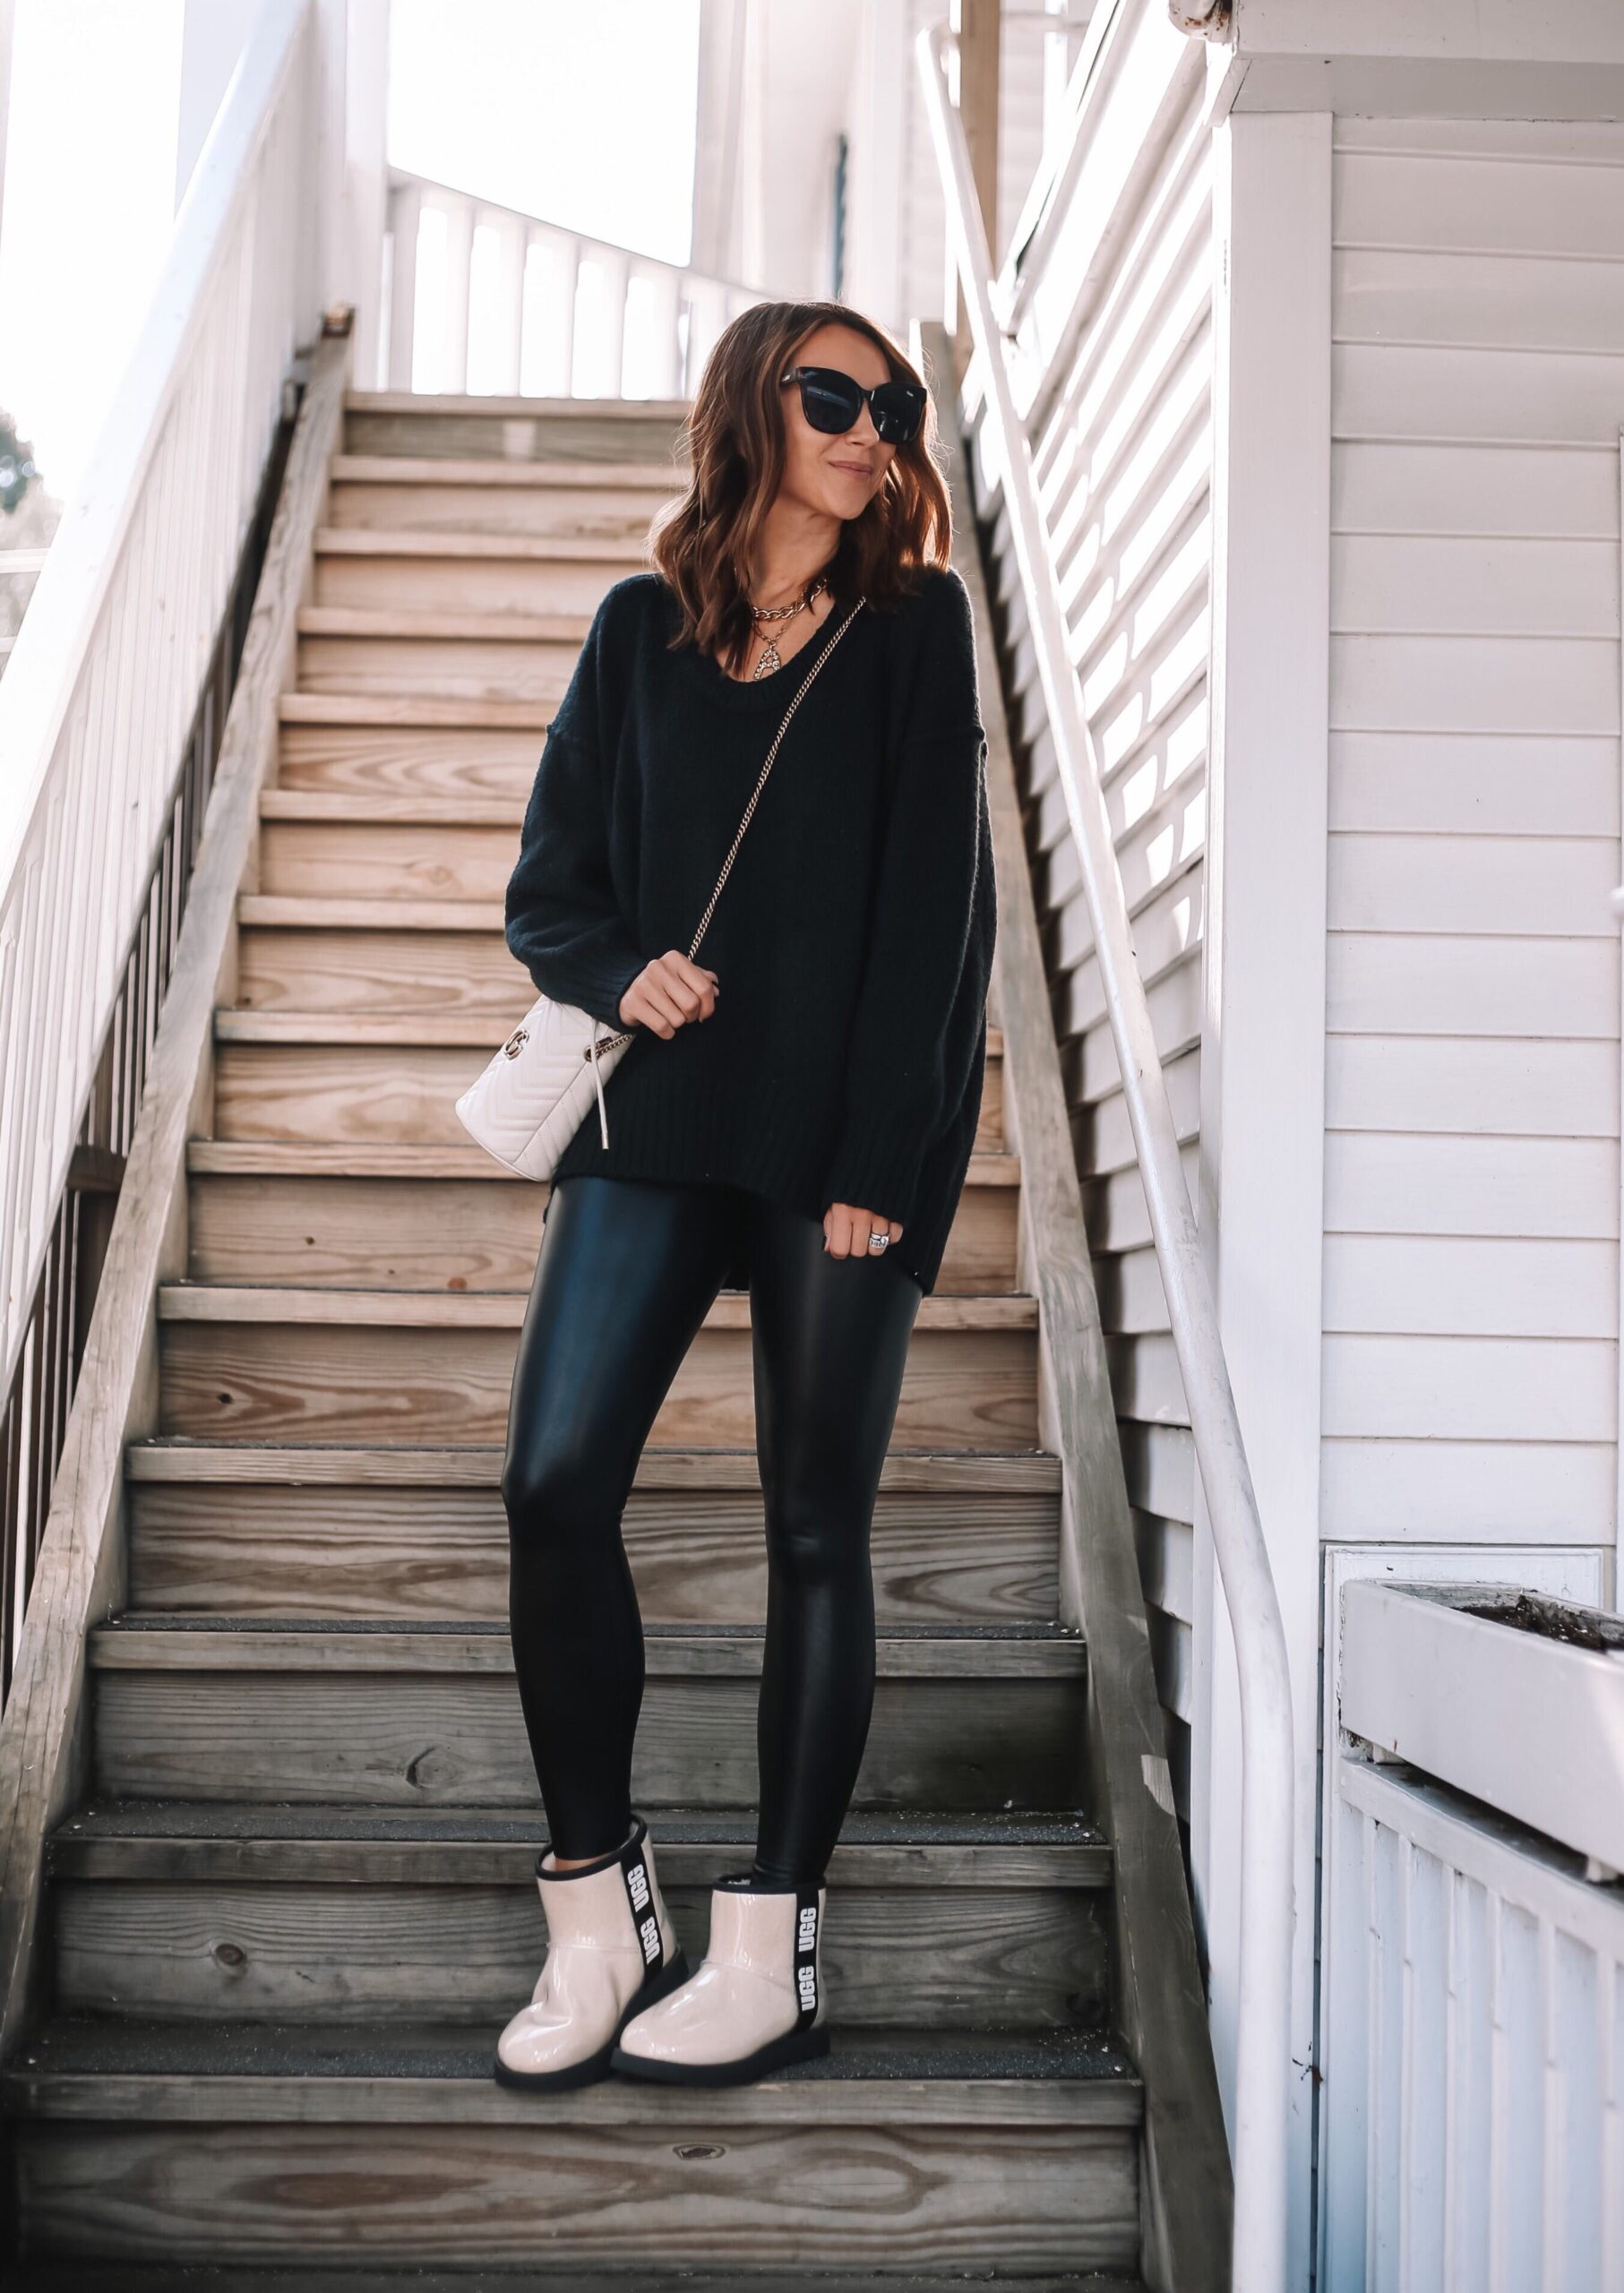 free people sweater, fall outfit ideas, waterproof ugg booties